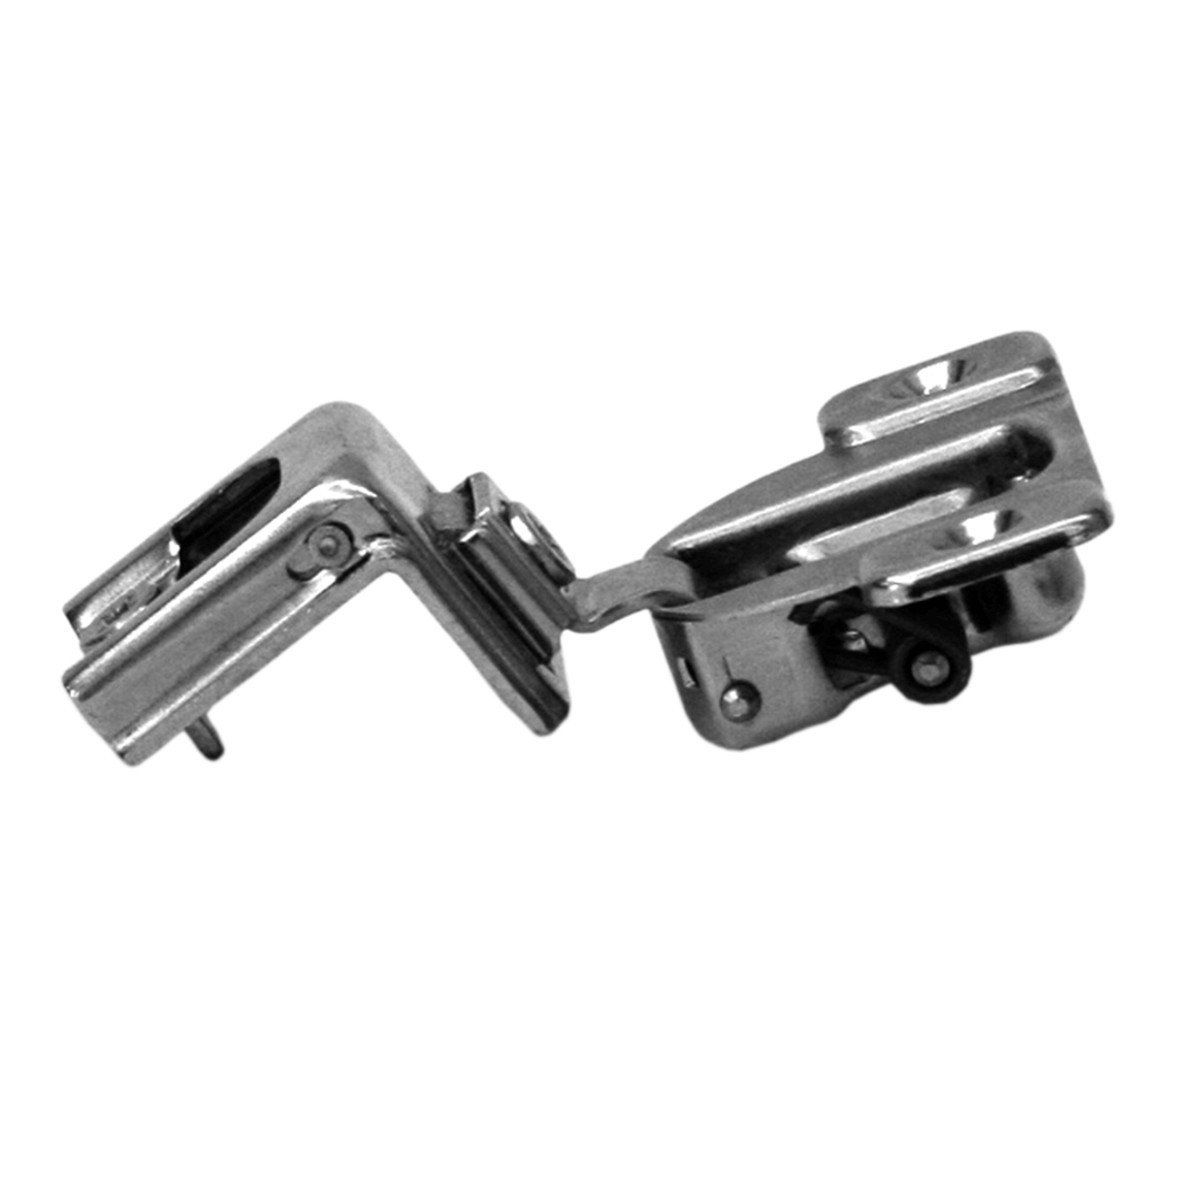 Blum 39c355c 20x20s 110 Degree Compact 39c 1 1 4 Overlay Cabinet Hinge Nickel Finish Pack Of 20 Overlay Cabinet Hinges Cabinet Hardware Personalized Items